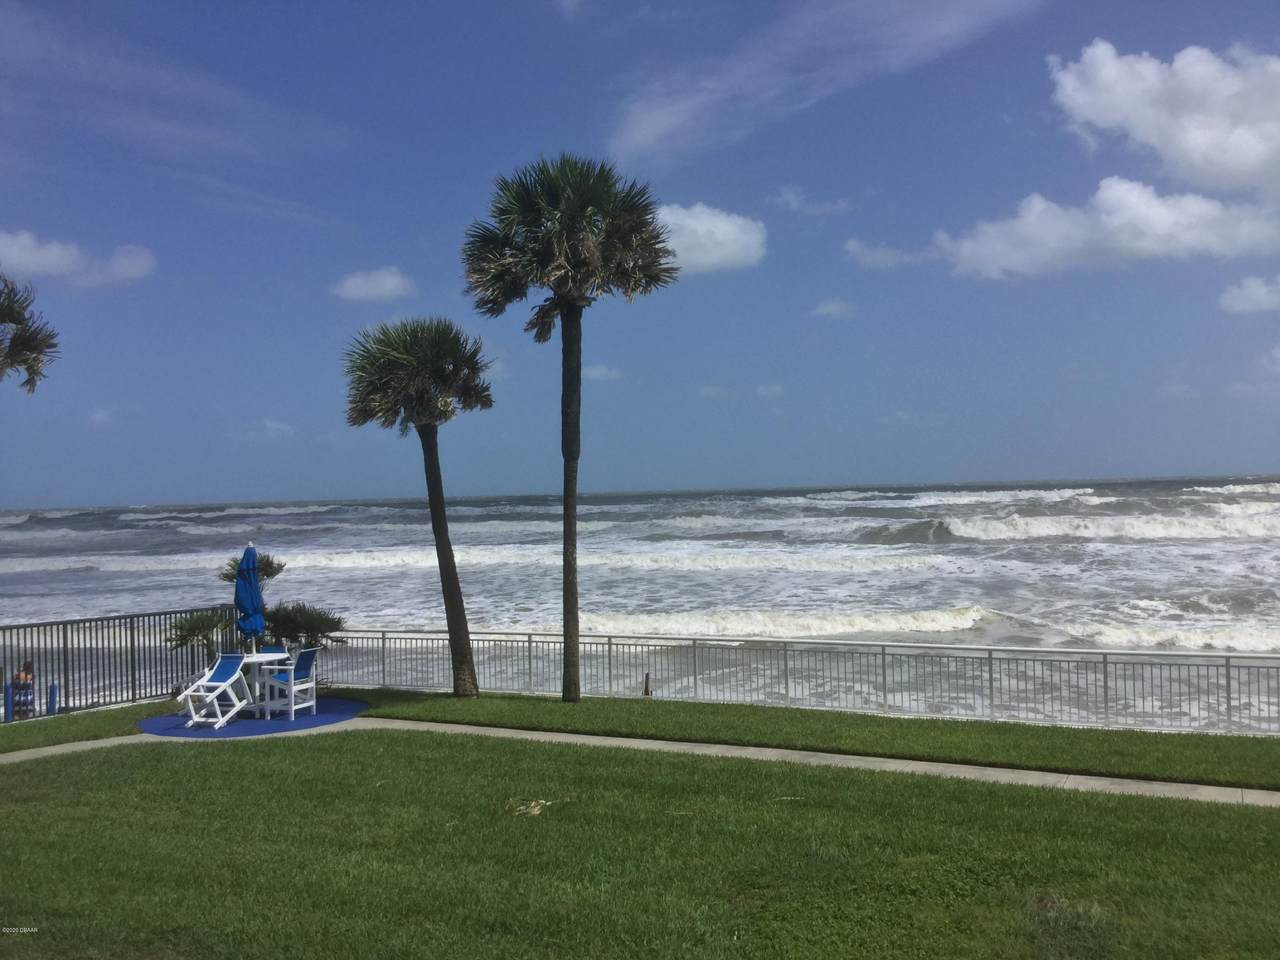 https://bt-photos.global.ssl.fastly.net/daytonabeach/1280_boomver_5_1075835-2.jpg